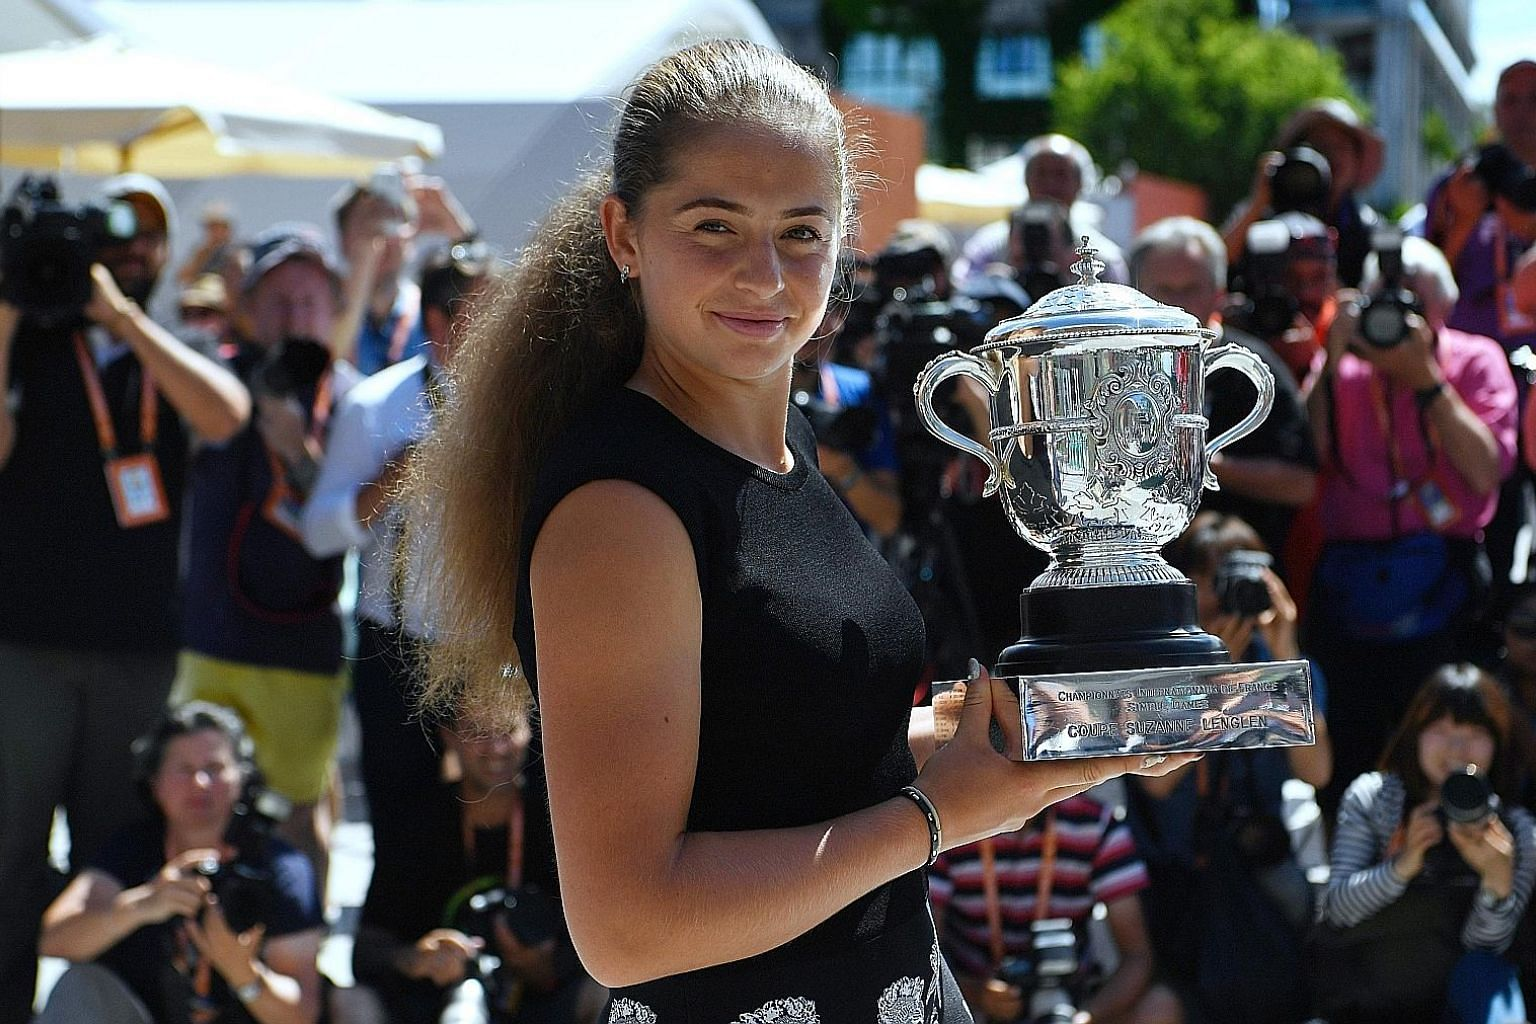 Latvia's Jelena Ostapenko with her French Open trophy. She said her ambition is to win the other three Grand Slams as well.